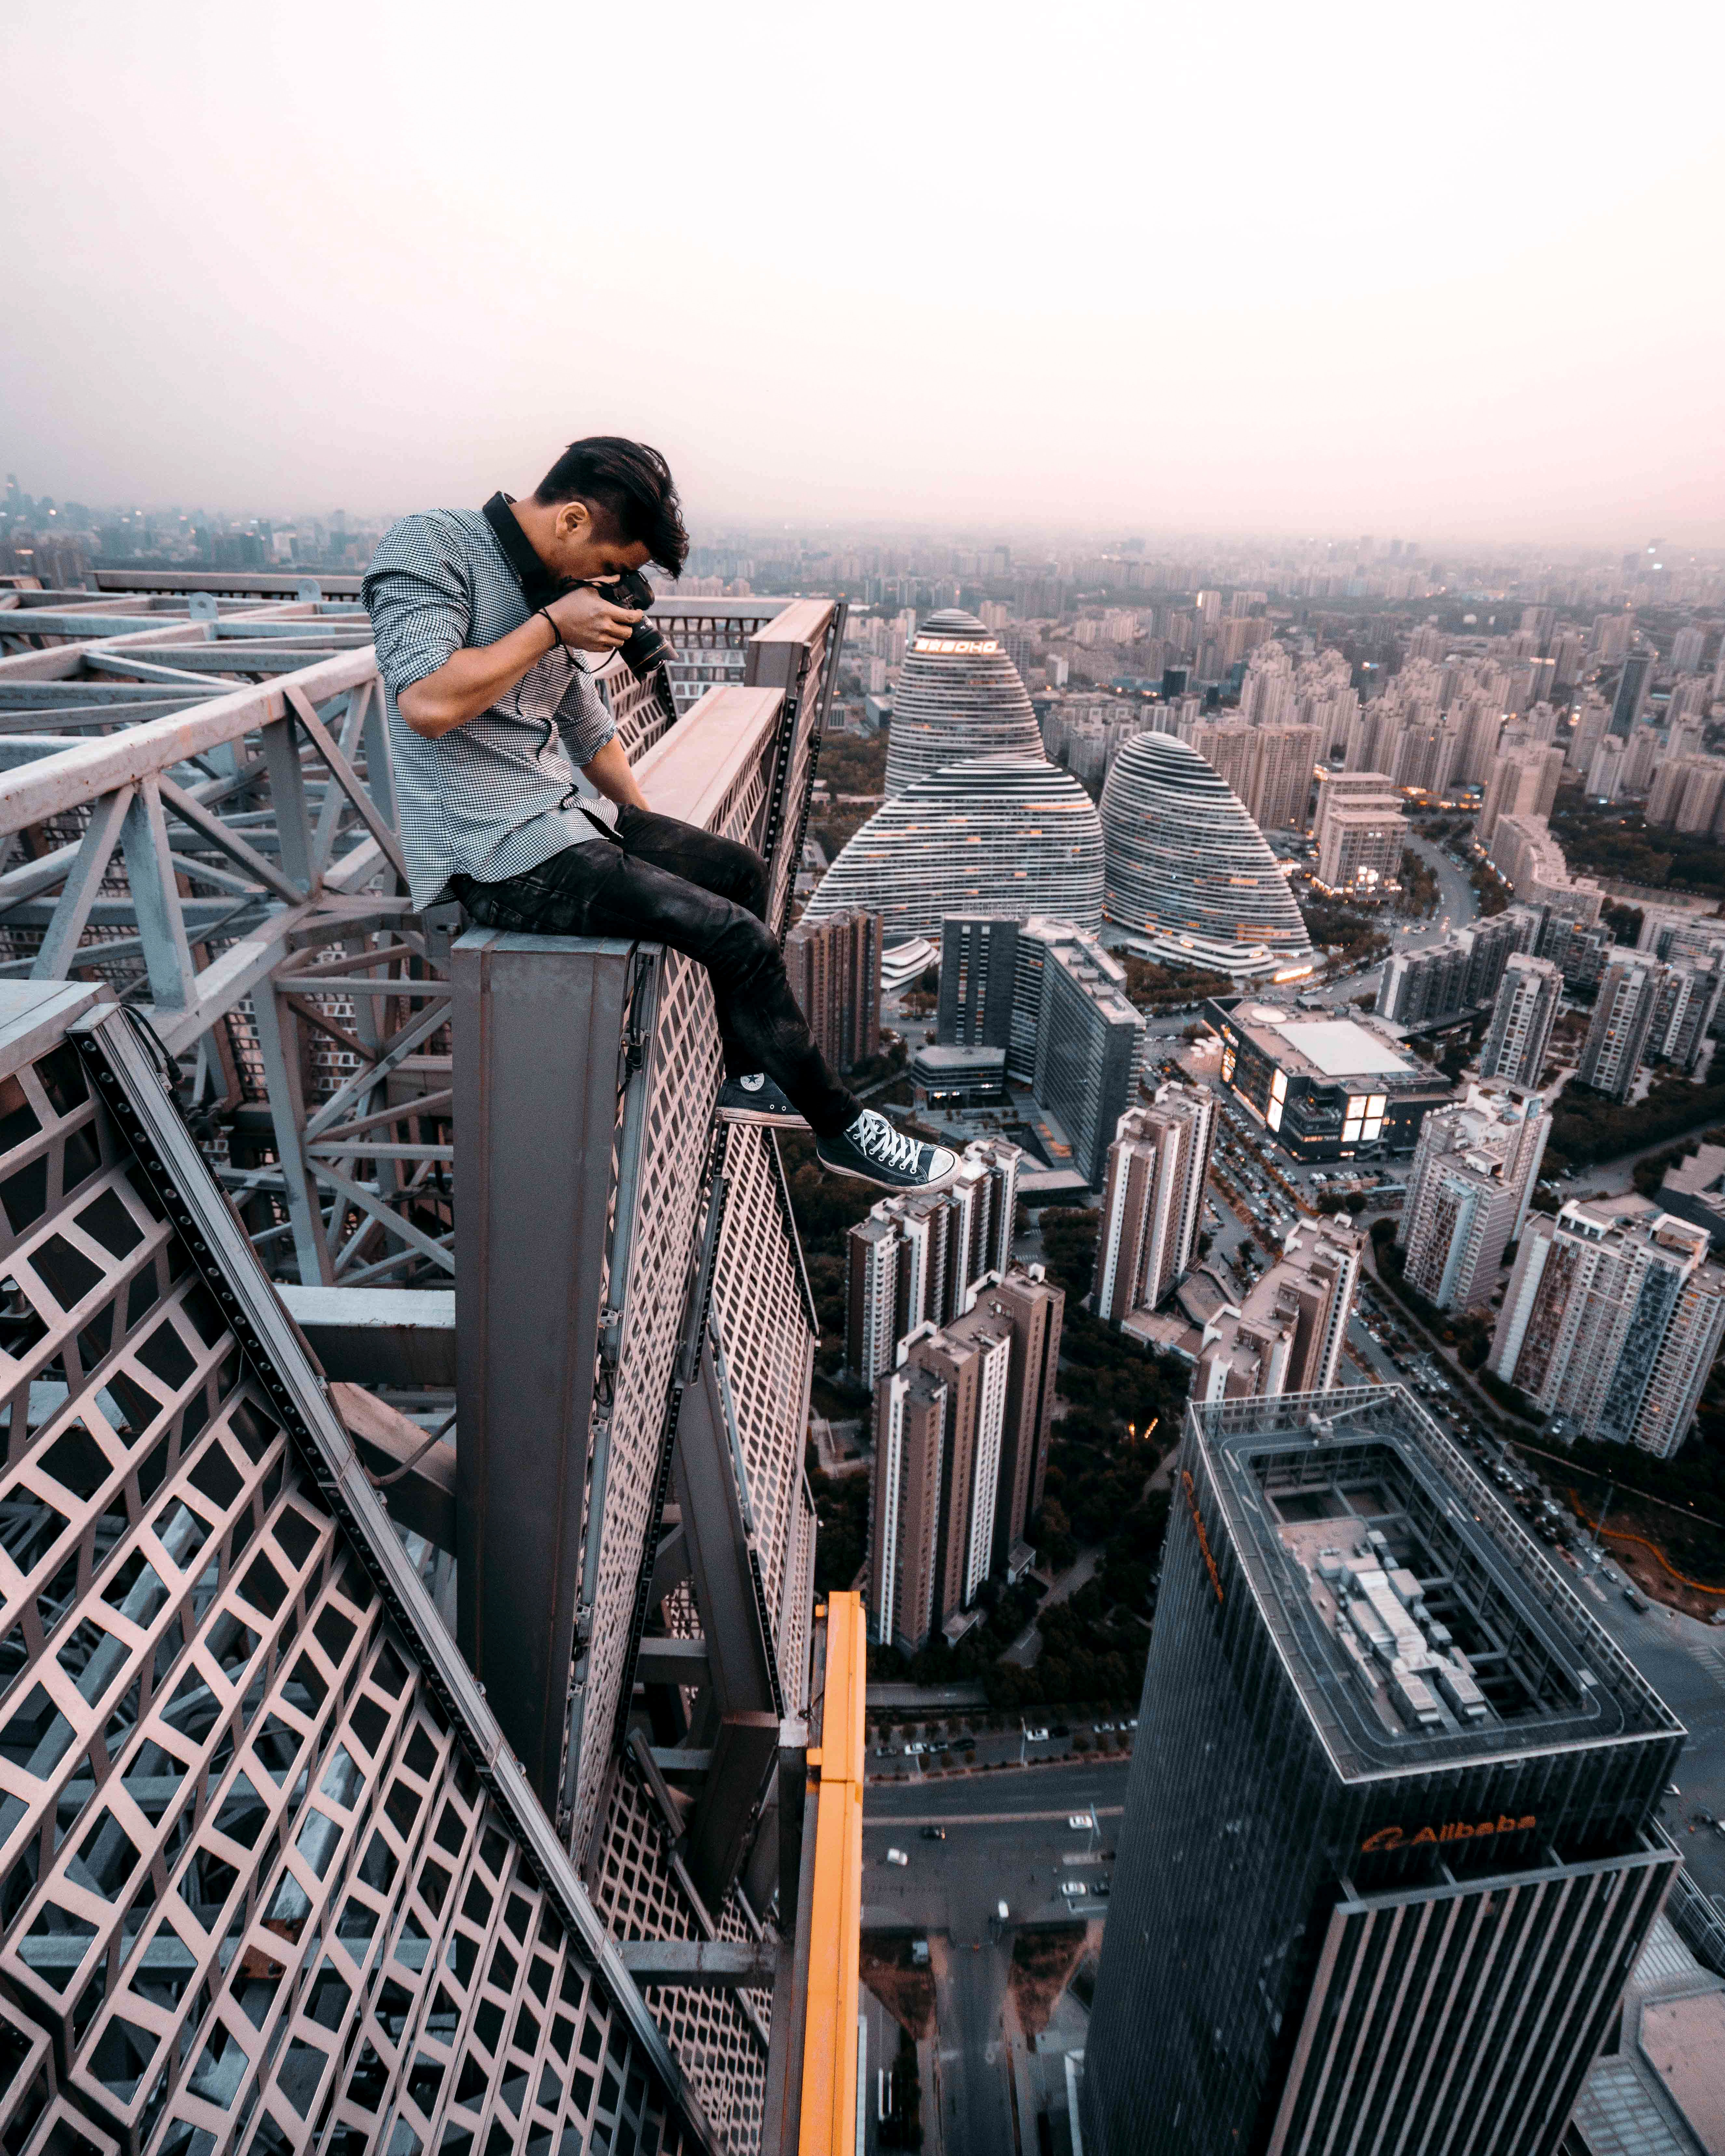 man sitting on top of building taking photo below